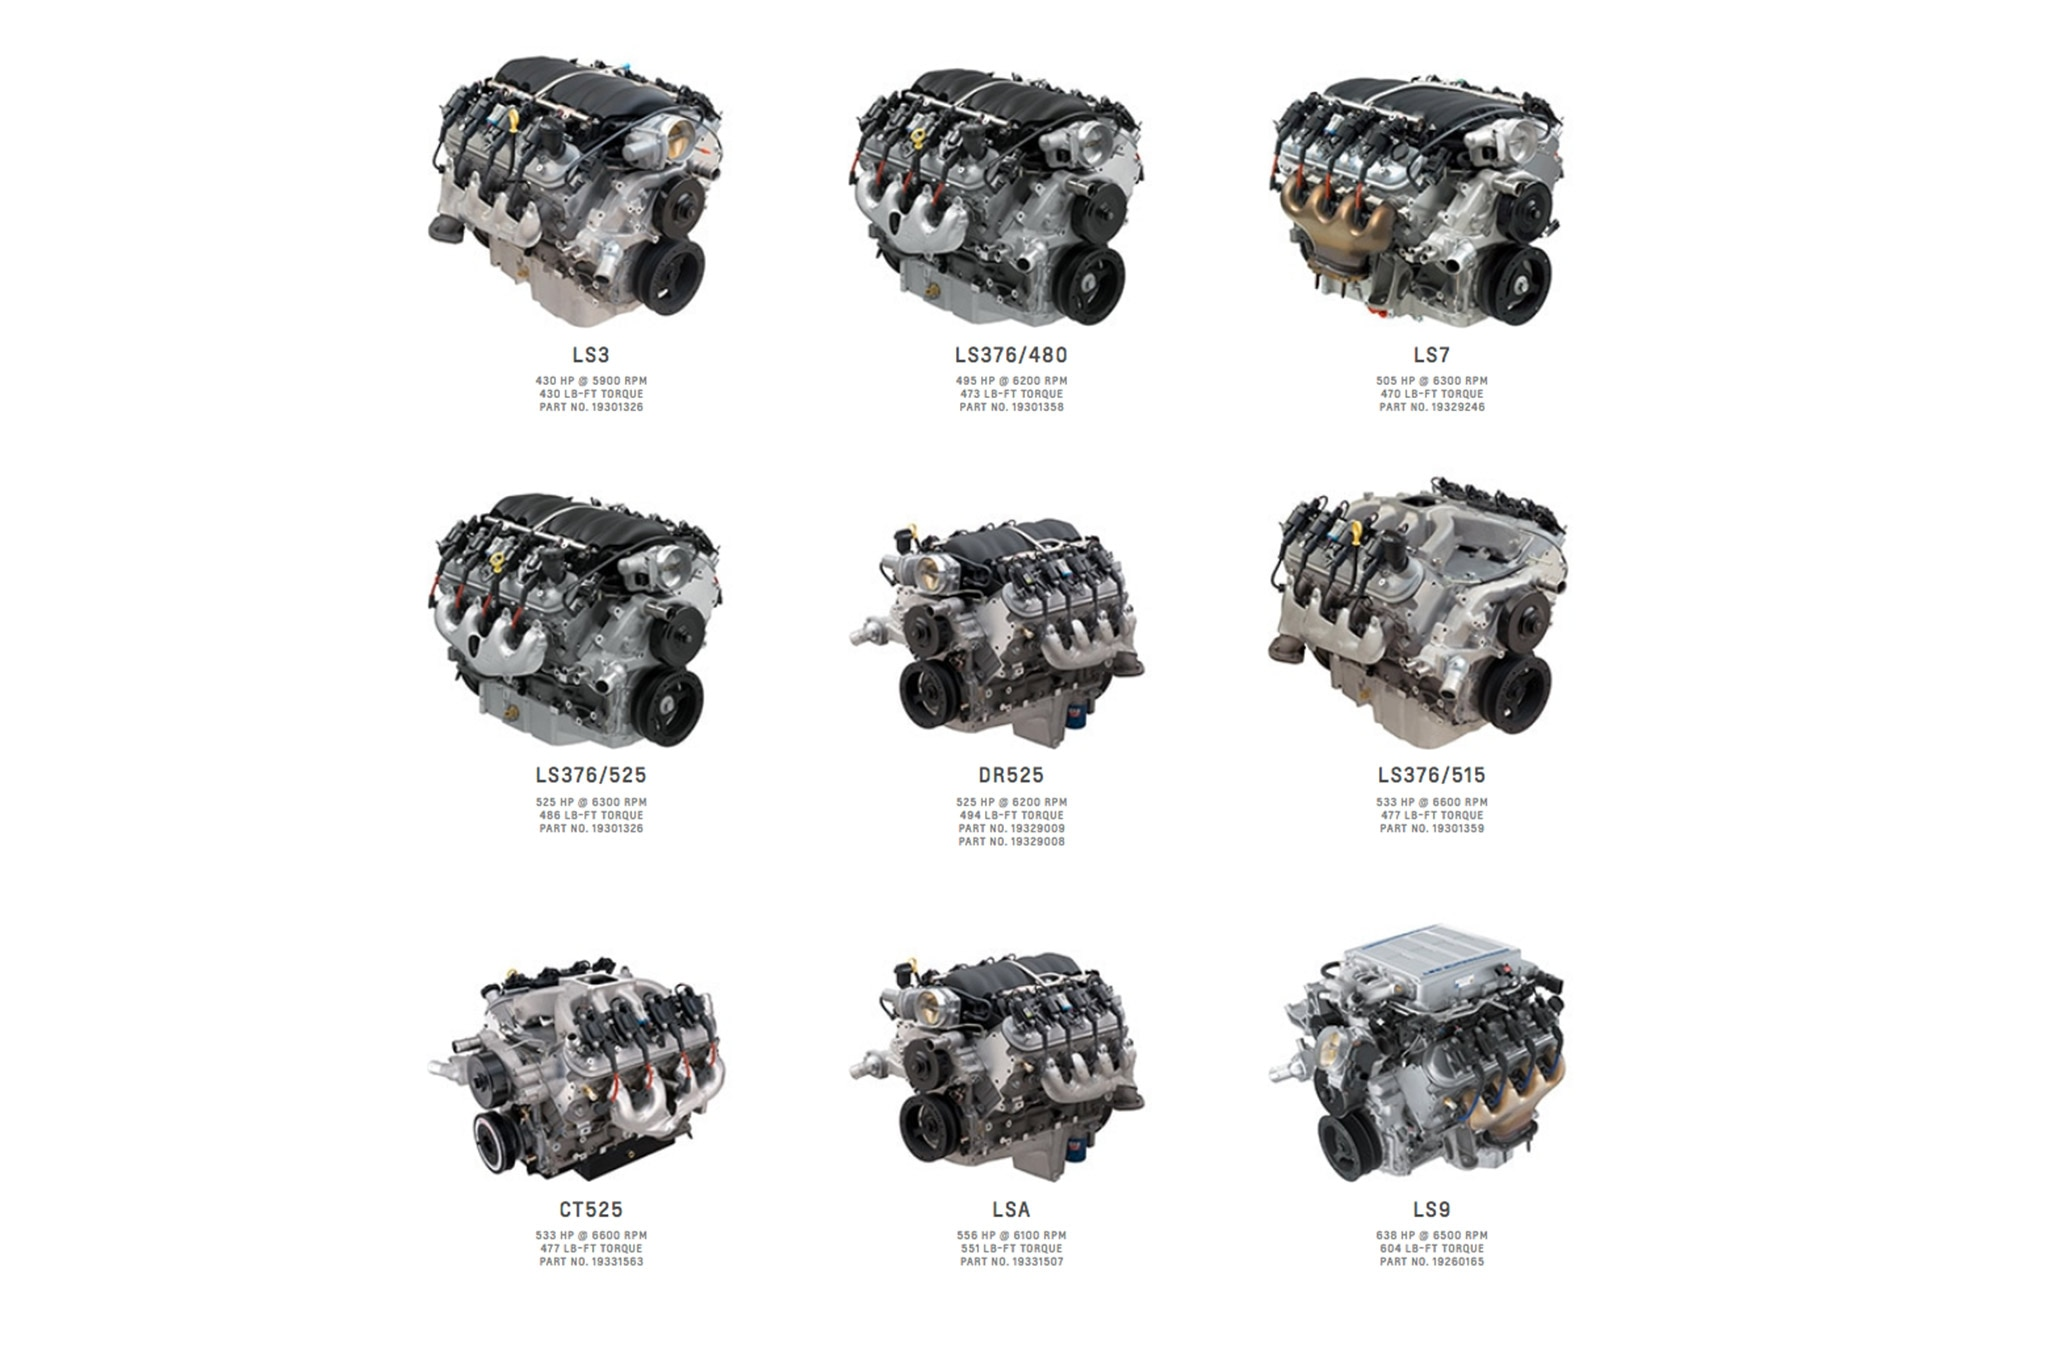 Chevrolet Performance S Great Ls Crate Rebate Is On